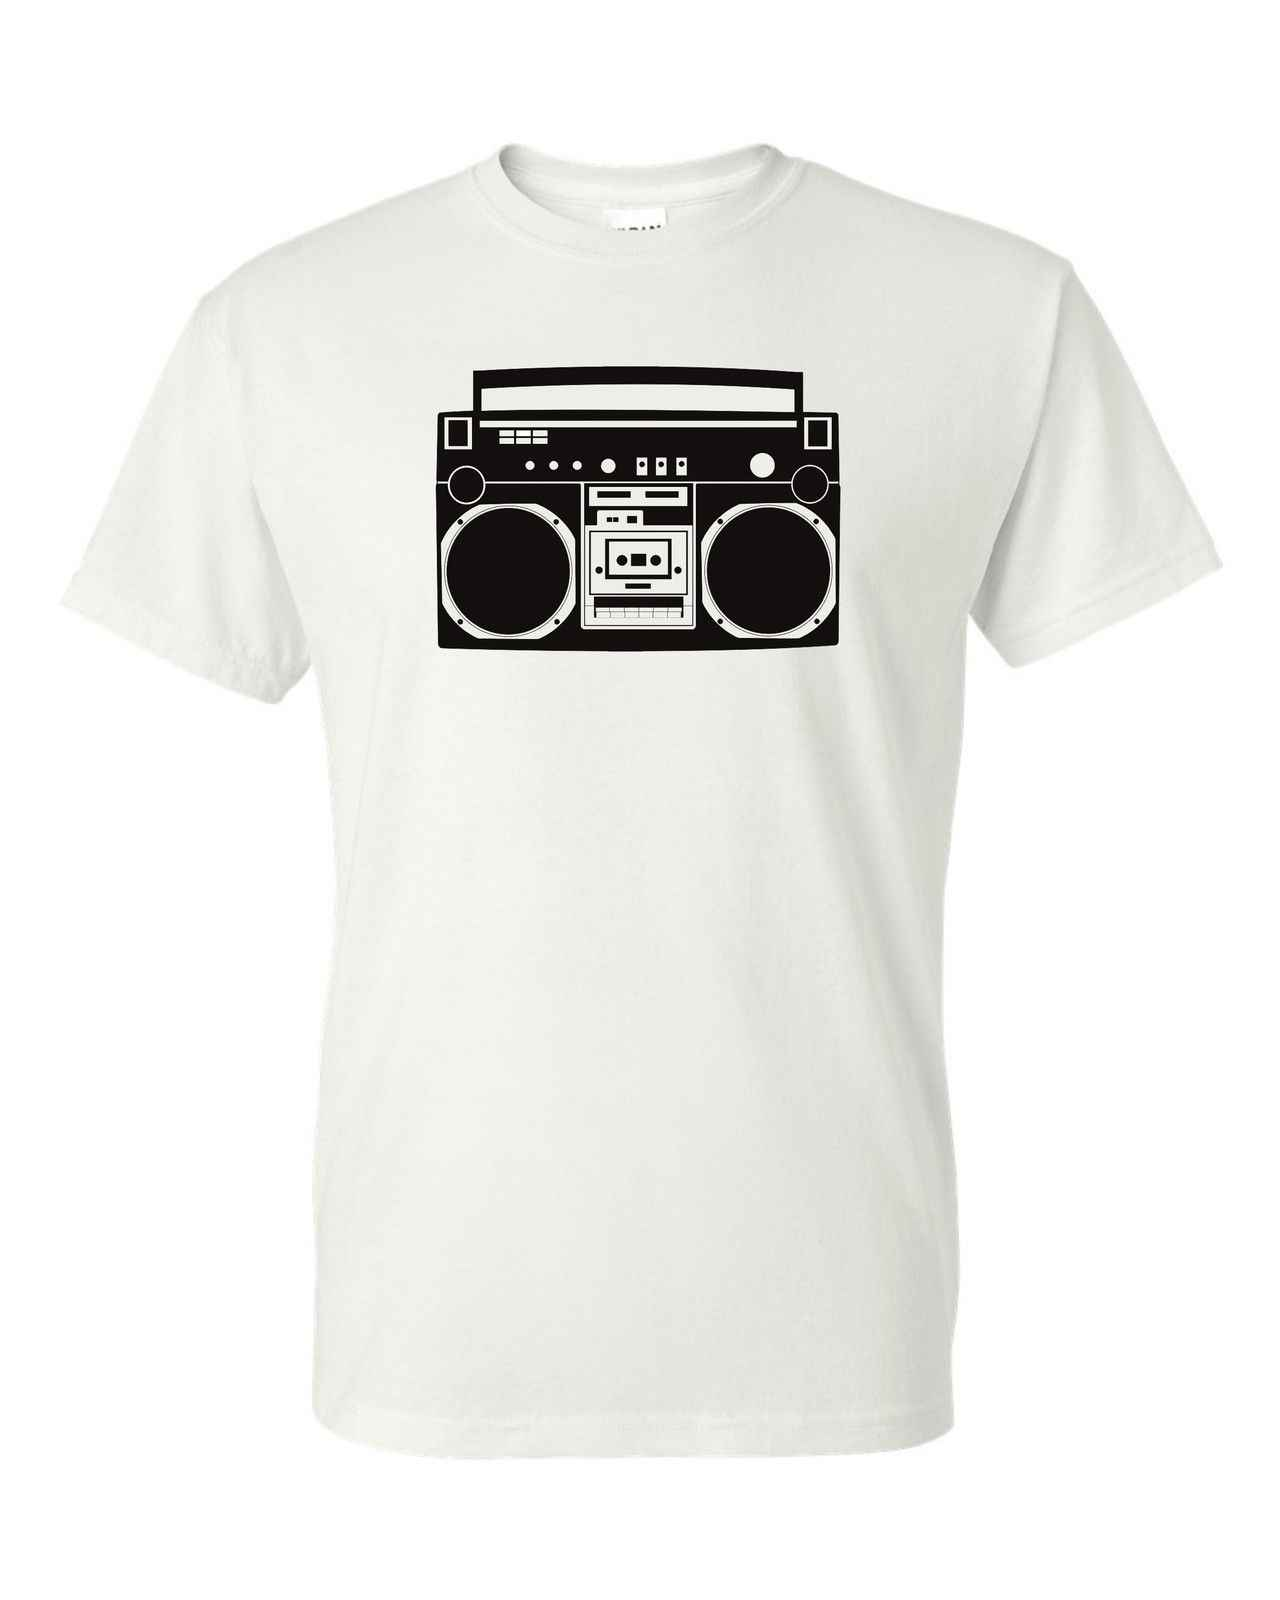 Boombox t-shirt rap hip hop radio tshirt Bboy Bgirl breakdance dance boom box summer o neck tee, cheap tee